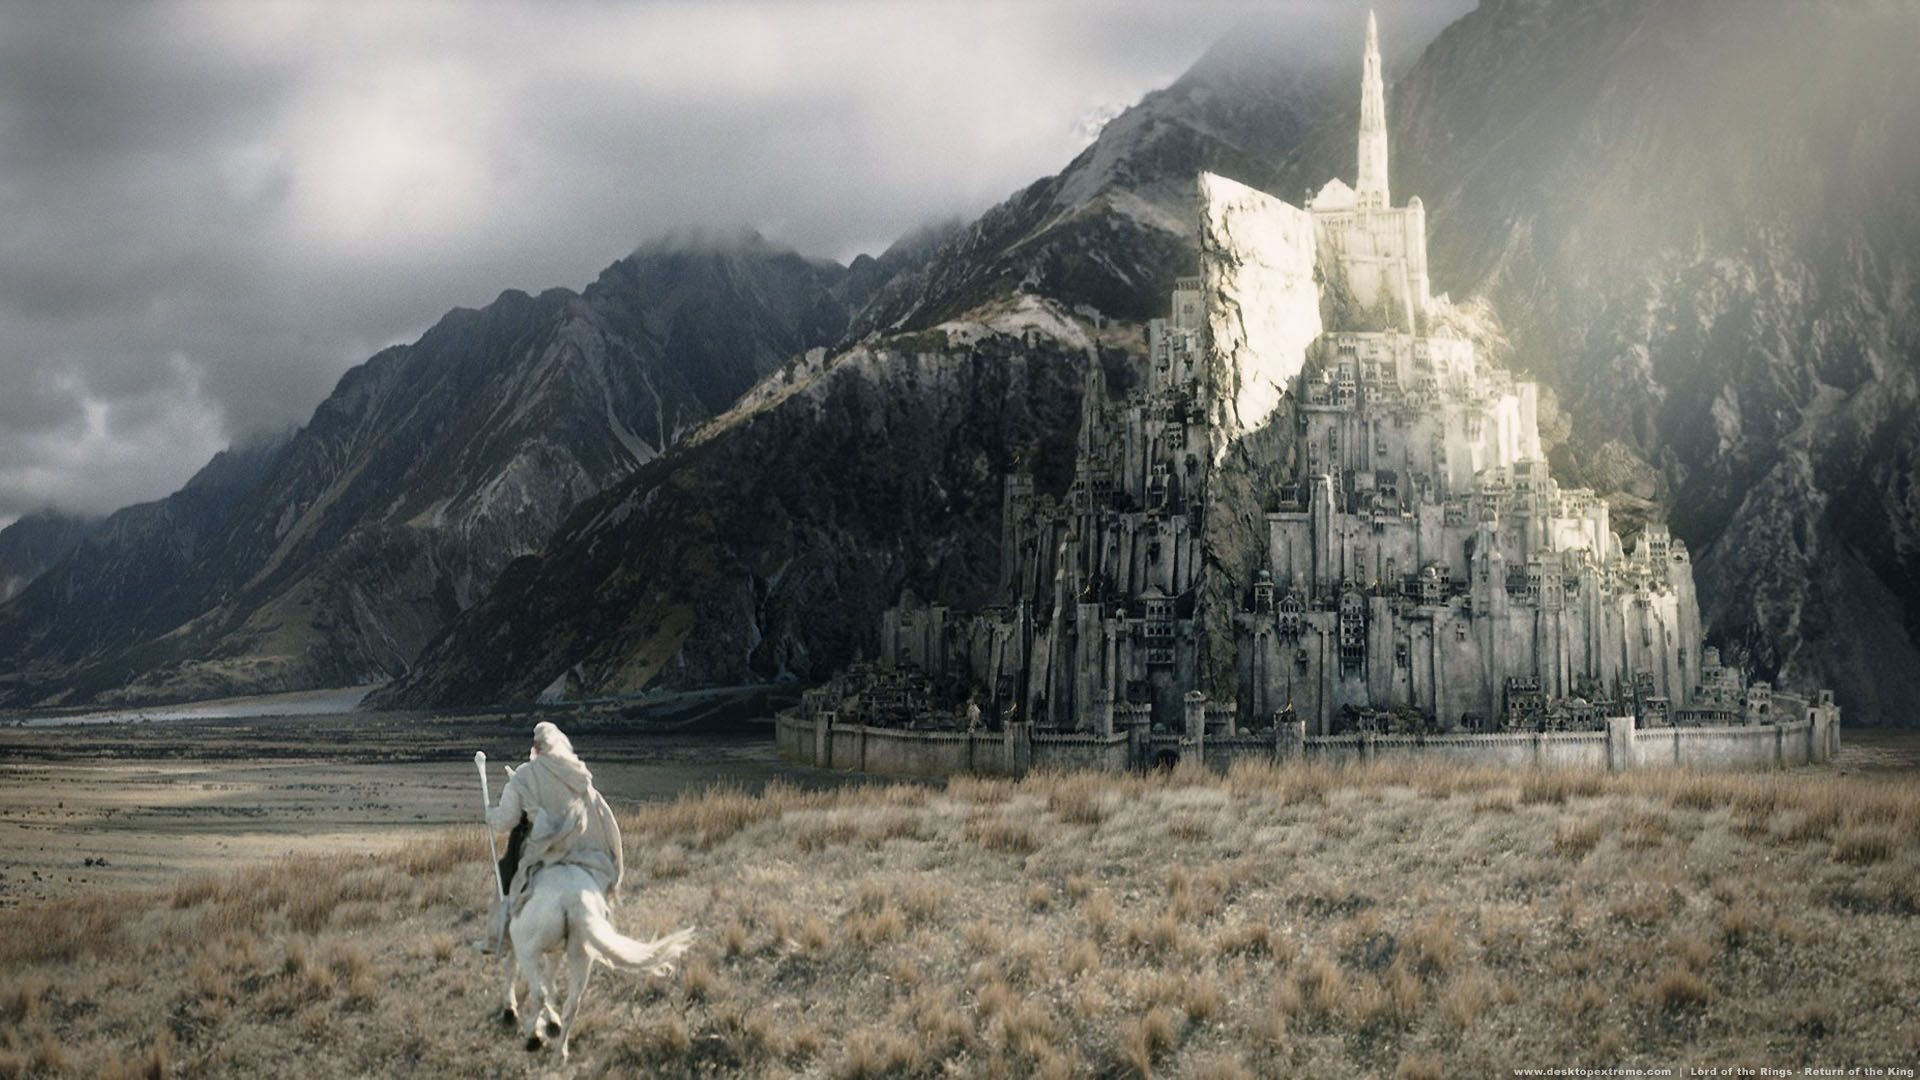 Lord Of The Rings Landscape Wallpapers Hd Resolution For Desktop Wallpaper  1920 x 1080 px 623.08